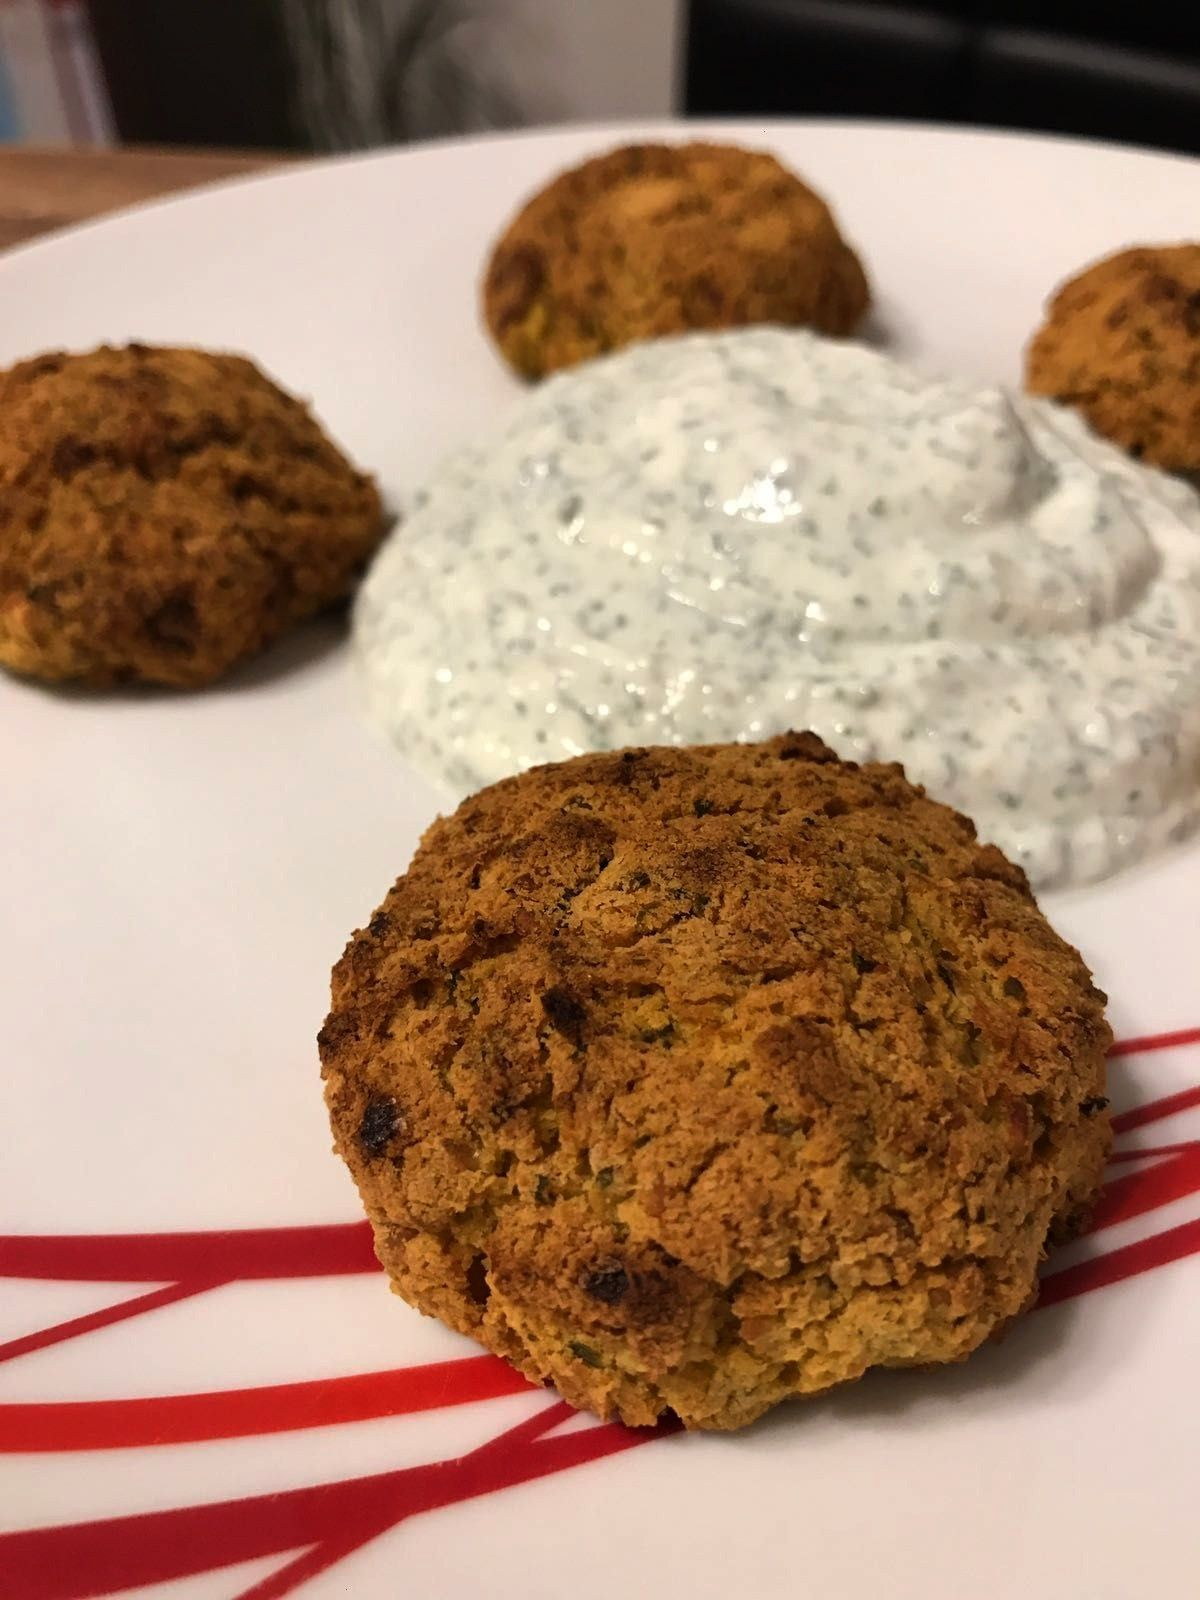 #budgetmealplanning #budgetfreezermeals #budgetcooking #delicious #healthy #falafel #fitness #recipe...